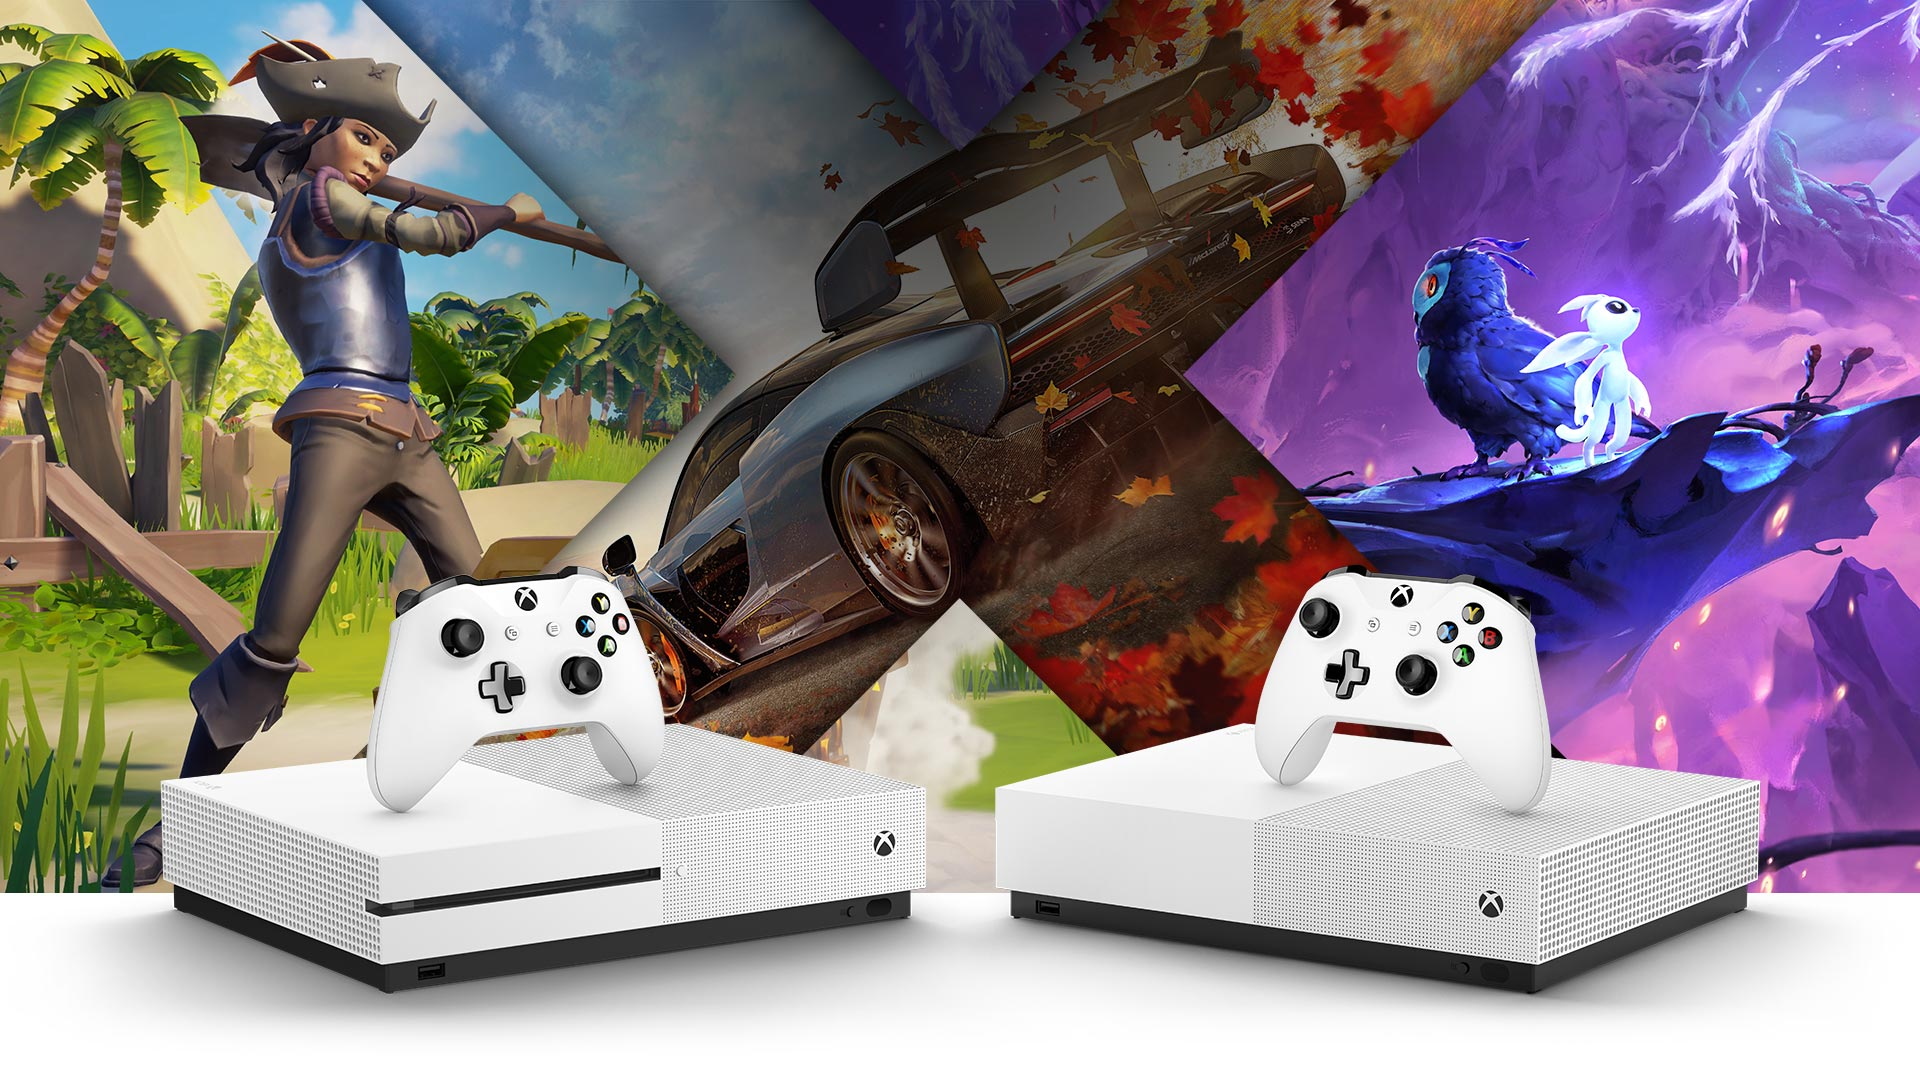 Sea of Thieves、Forza Horizon 4、Ori and the Will of Wisps のアートワークに囲まれ た Xbox One S と Xbox One S All Digital Edition の正面図